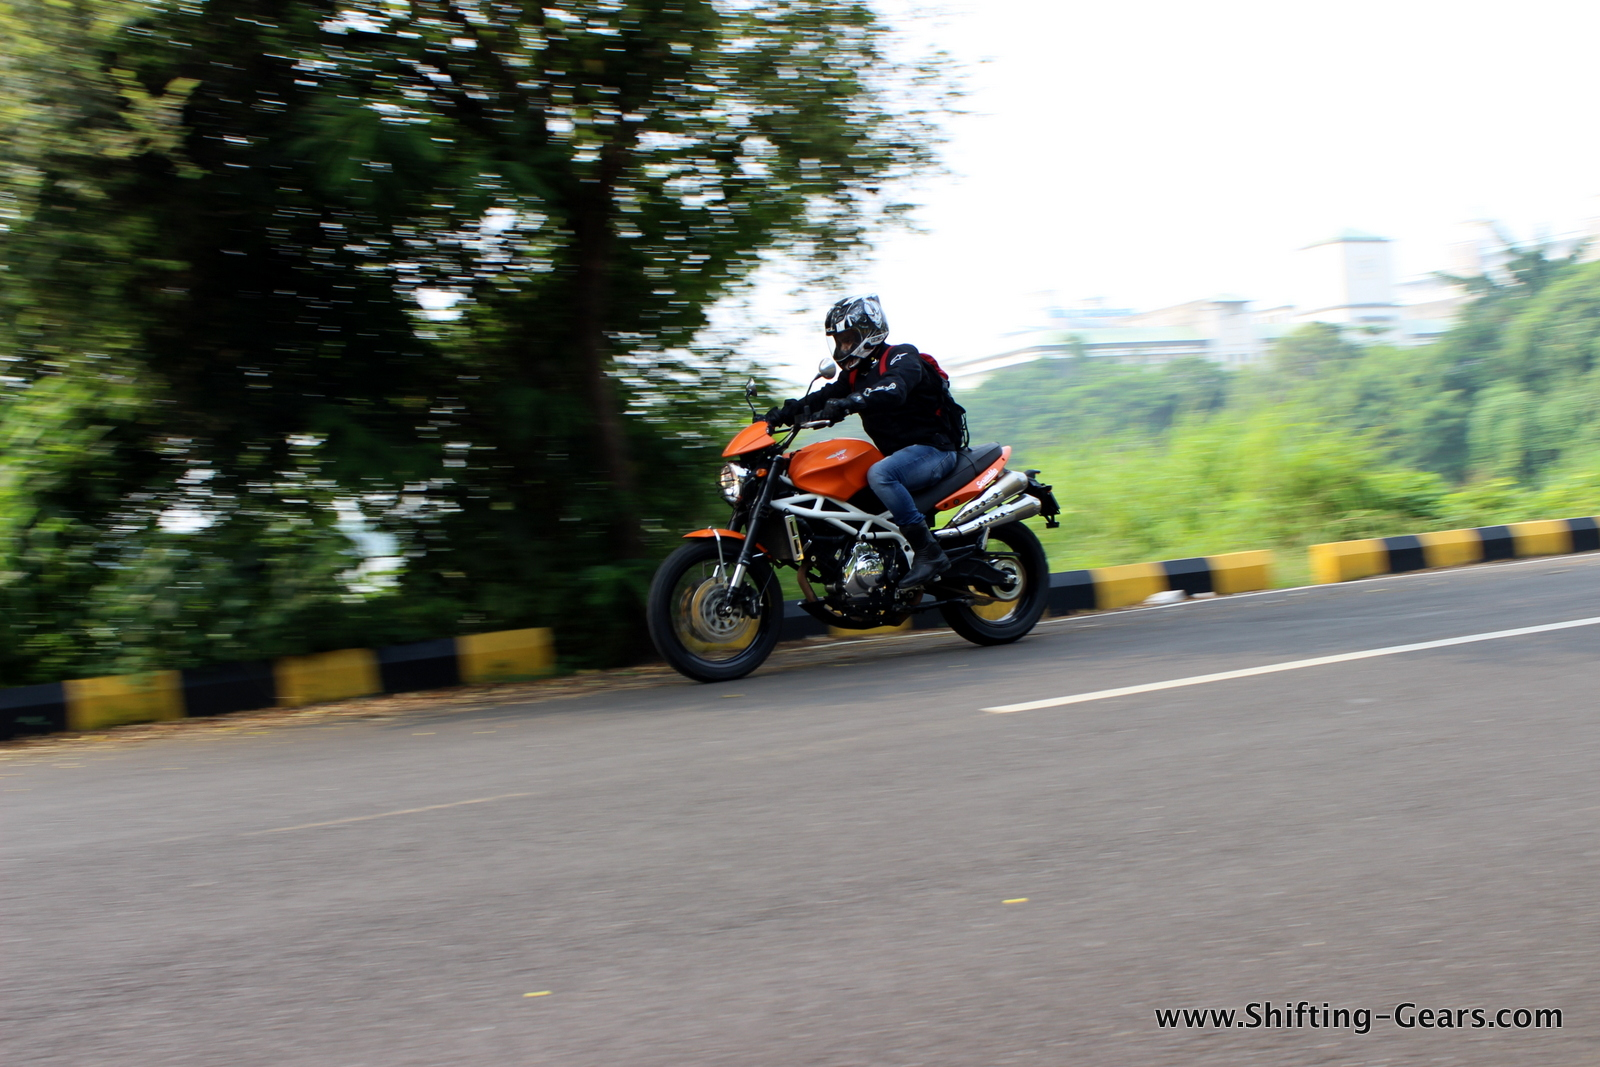 CBU pricing makes the Scrambler much more expensive than other much more established superbikes available in India